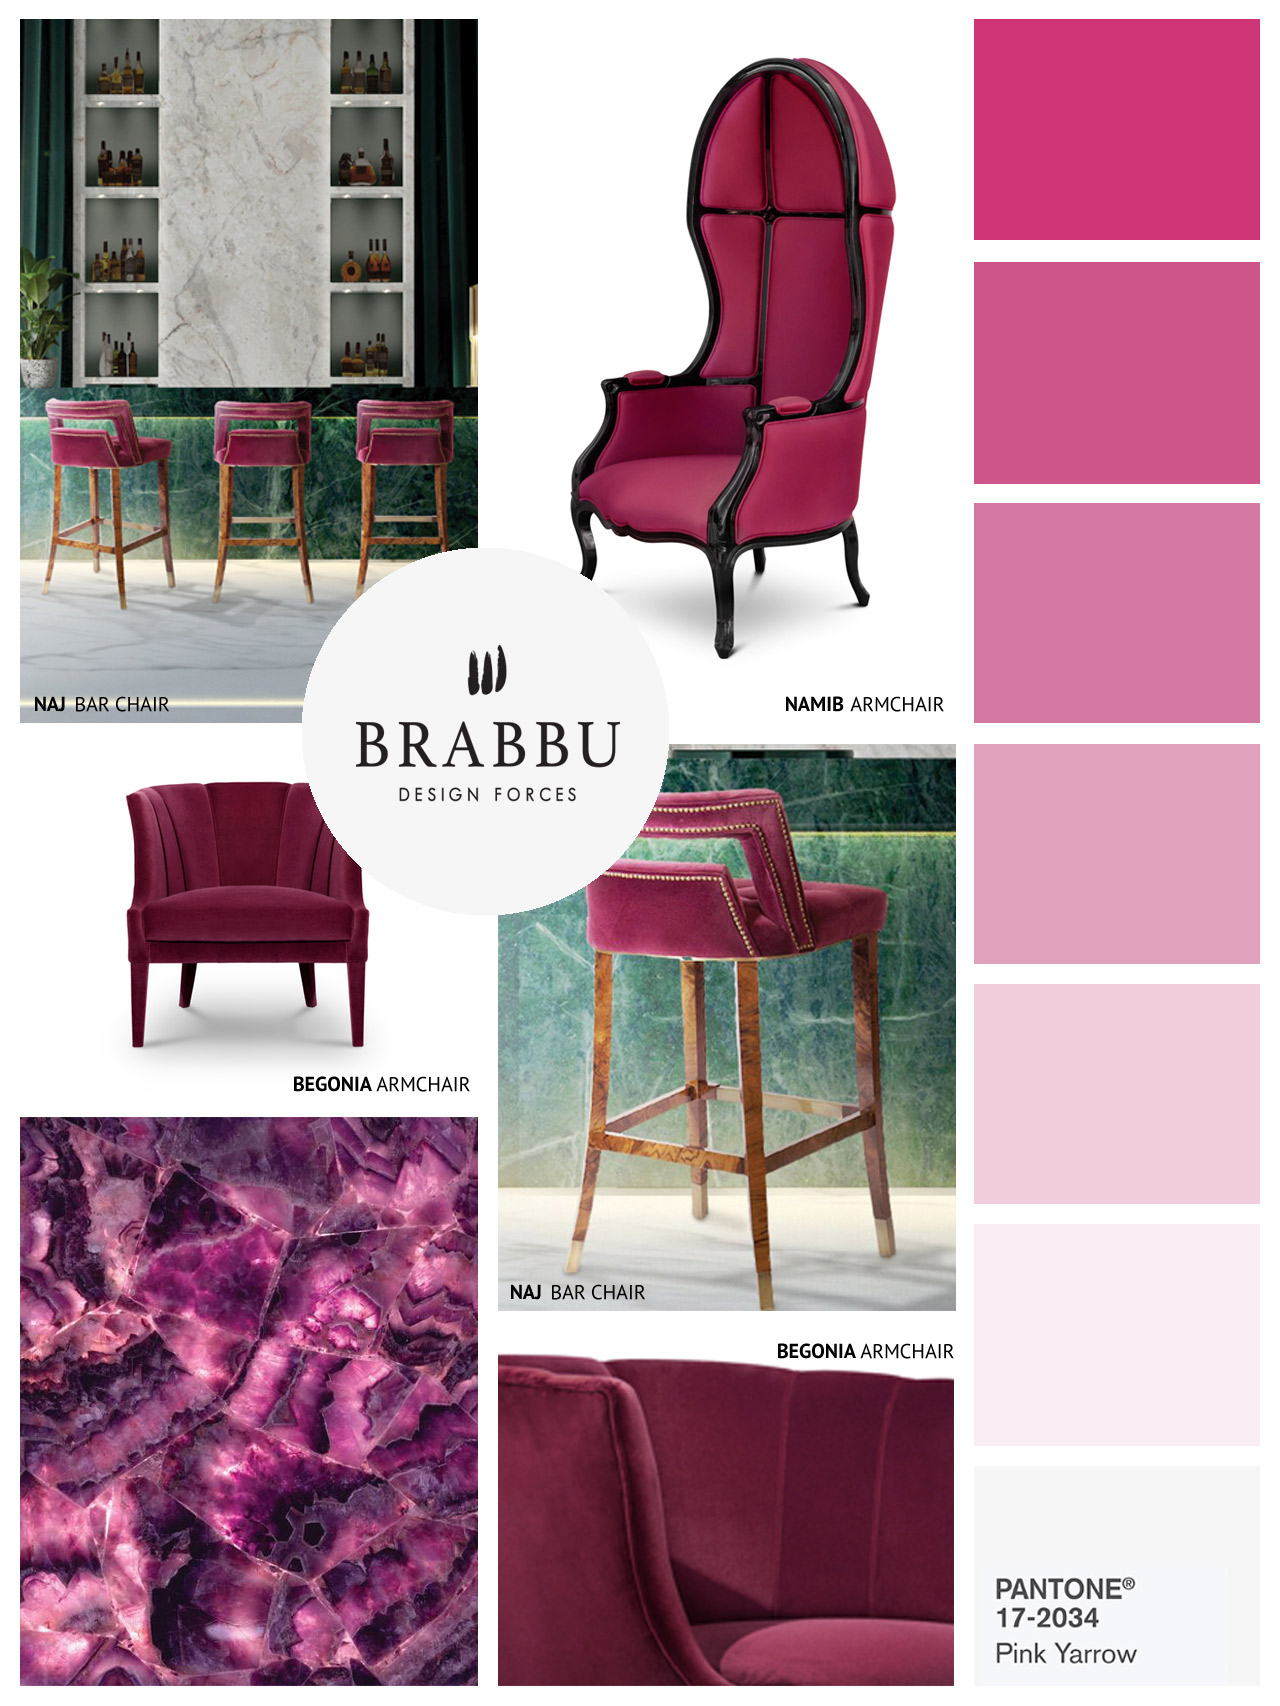 10 Amazing Colorful Chairs for A Chic Home 10 Amazing Colorful Chairs for A Chic Home moodboard by brabbu 6 HR